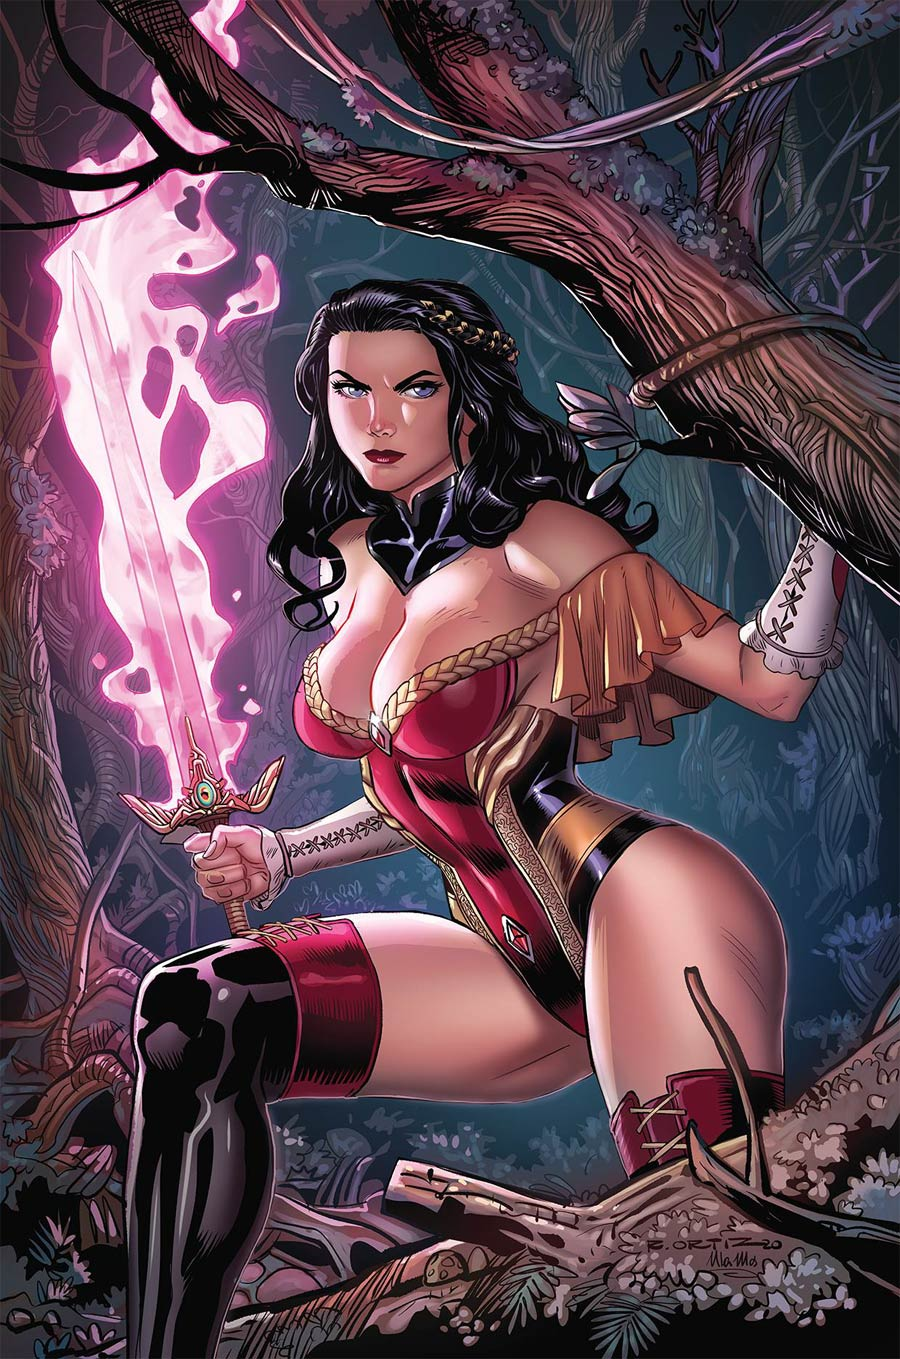 Grimm Fairy Tales Vol 2 #46 Cover C Richard Ortiz